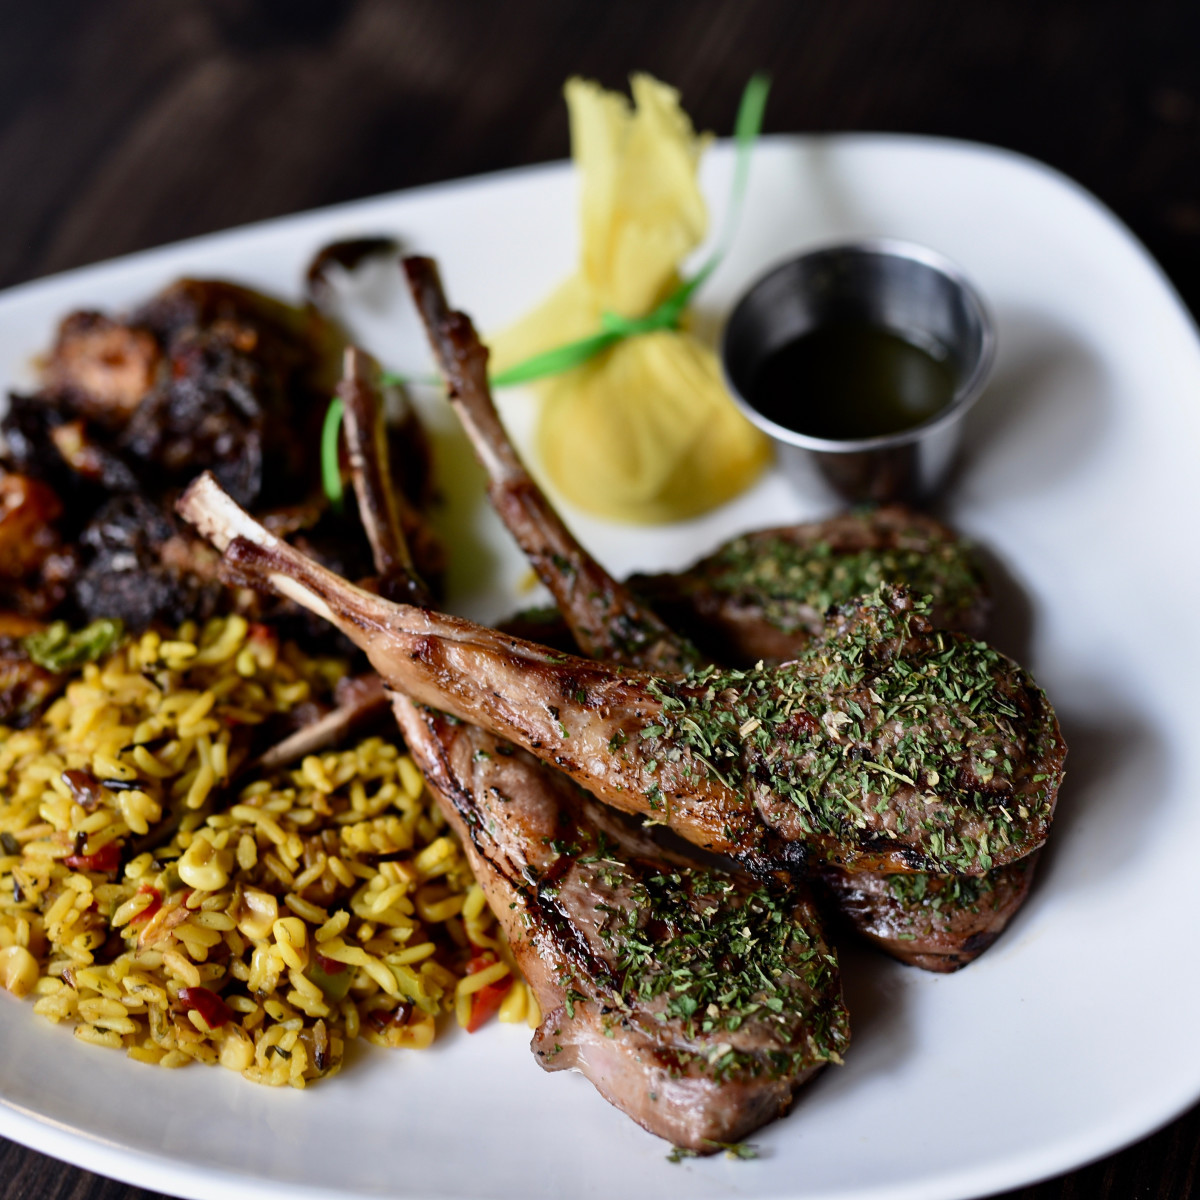 Peli Peli Woodlands lamb chops